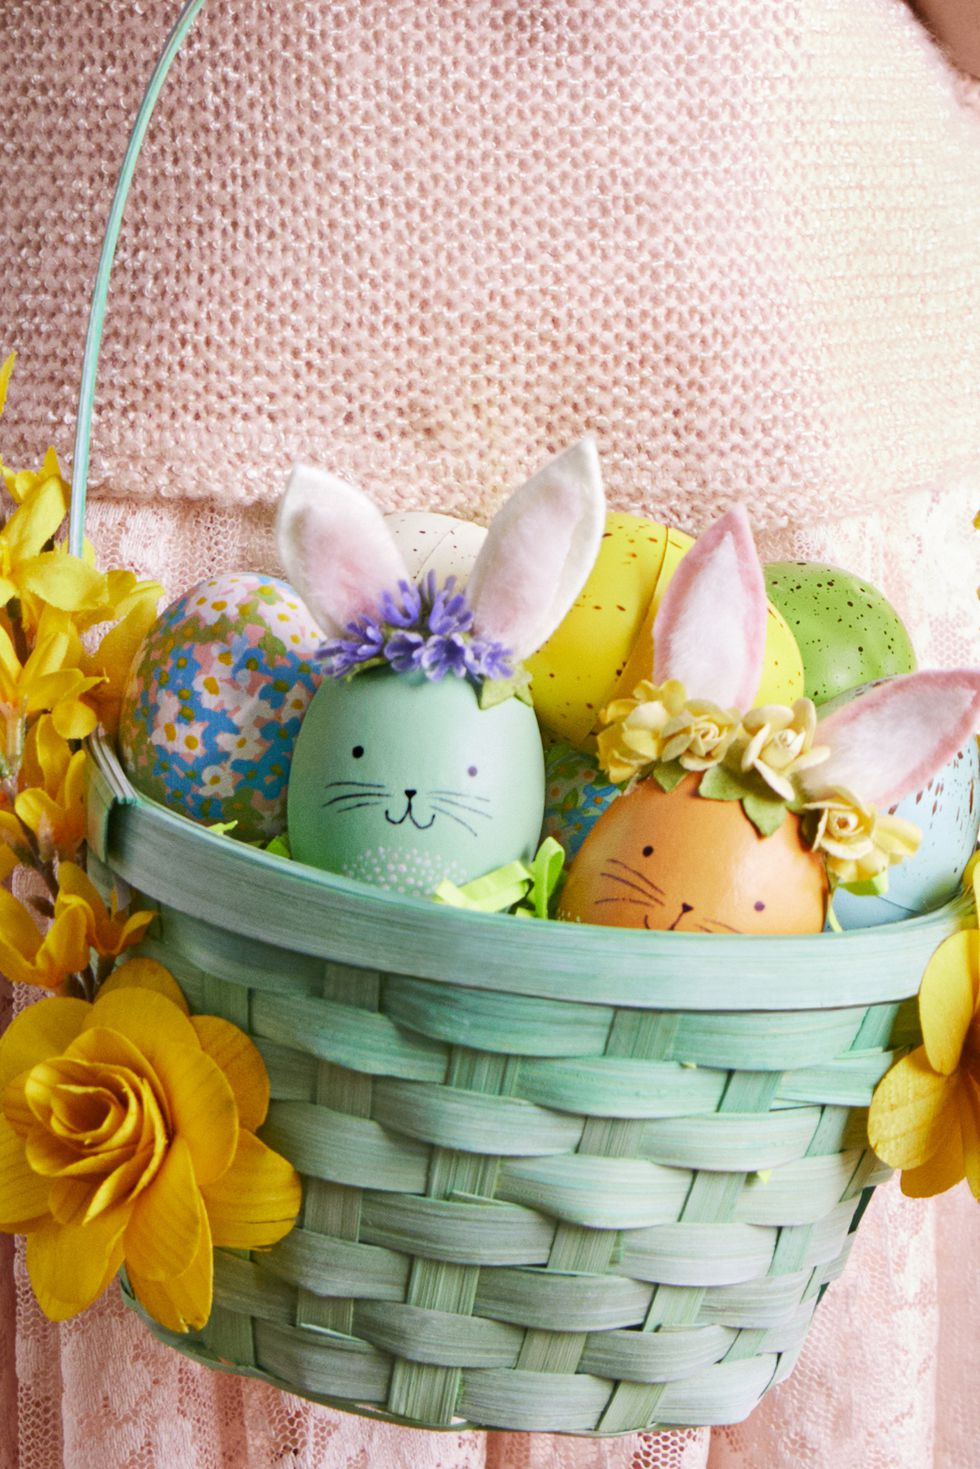 bunny-floral-crown-easter-eggs-1520291300